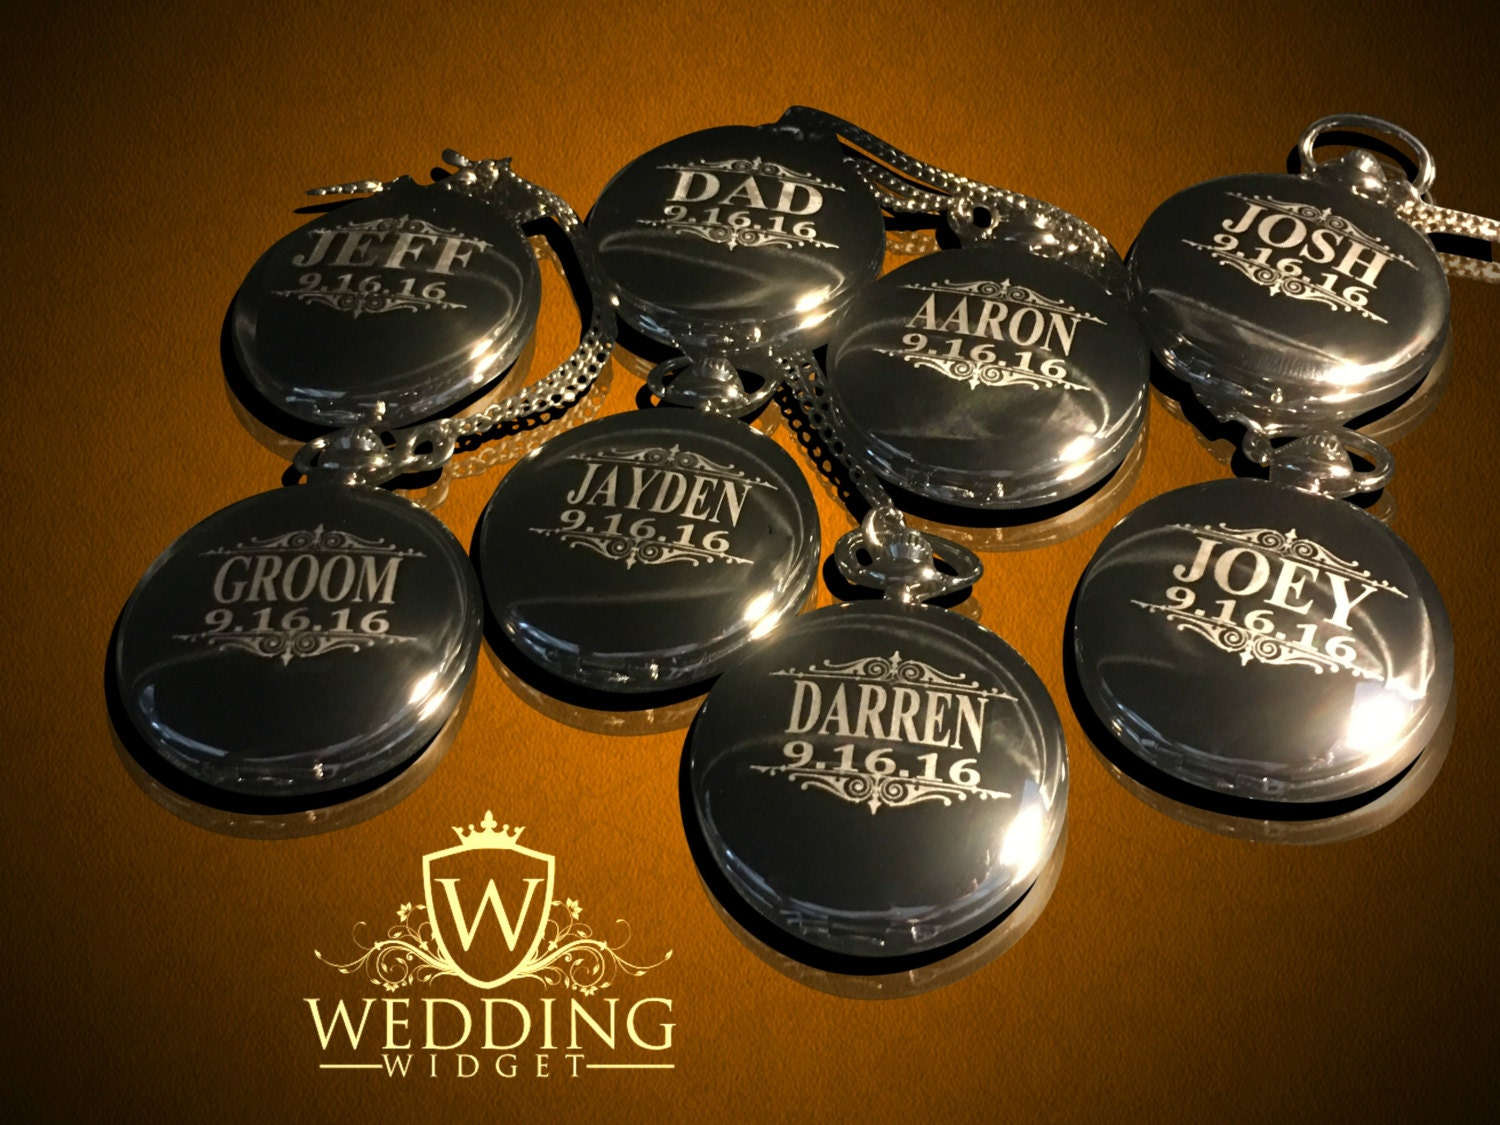 Groomsmen Gift 5 Personalized Pocket Watches Bride And Groom